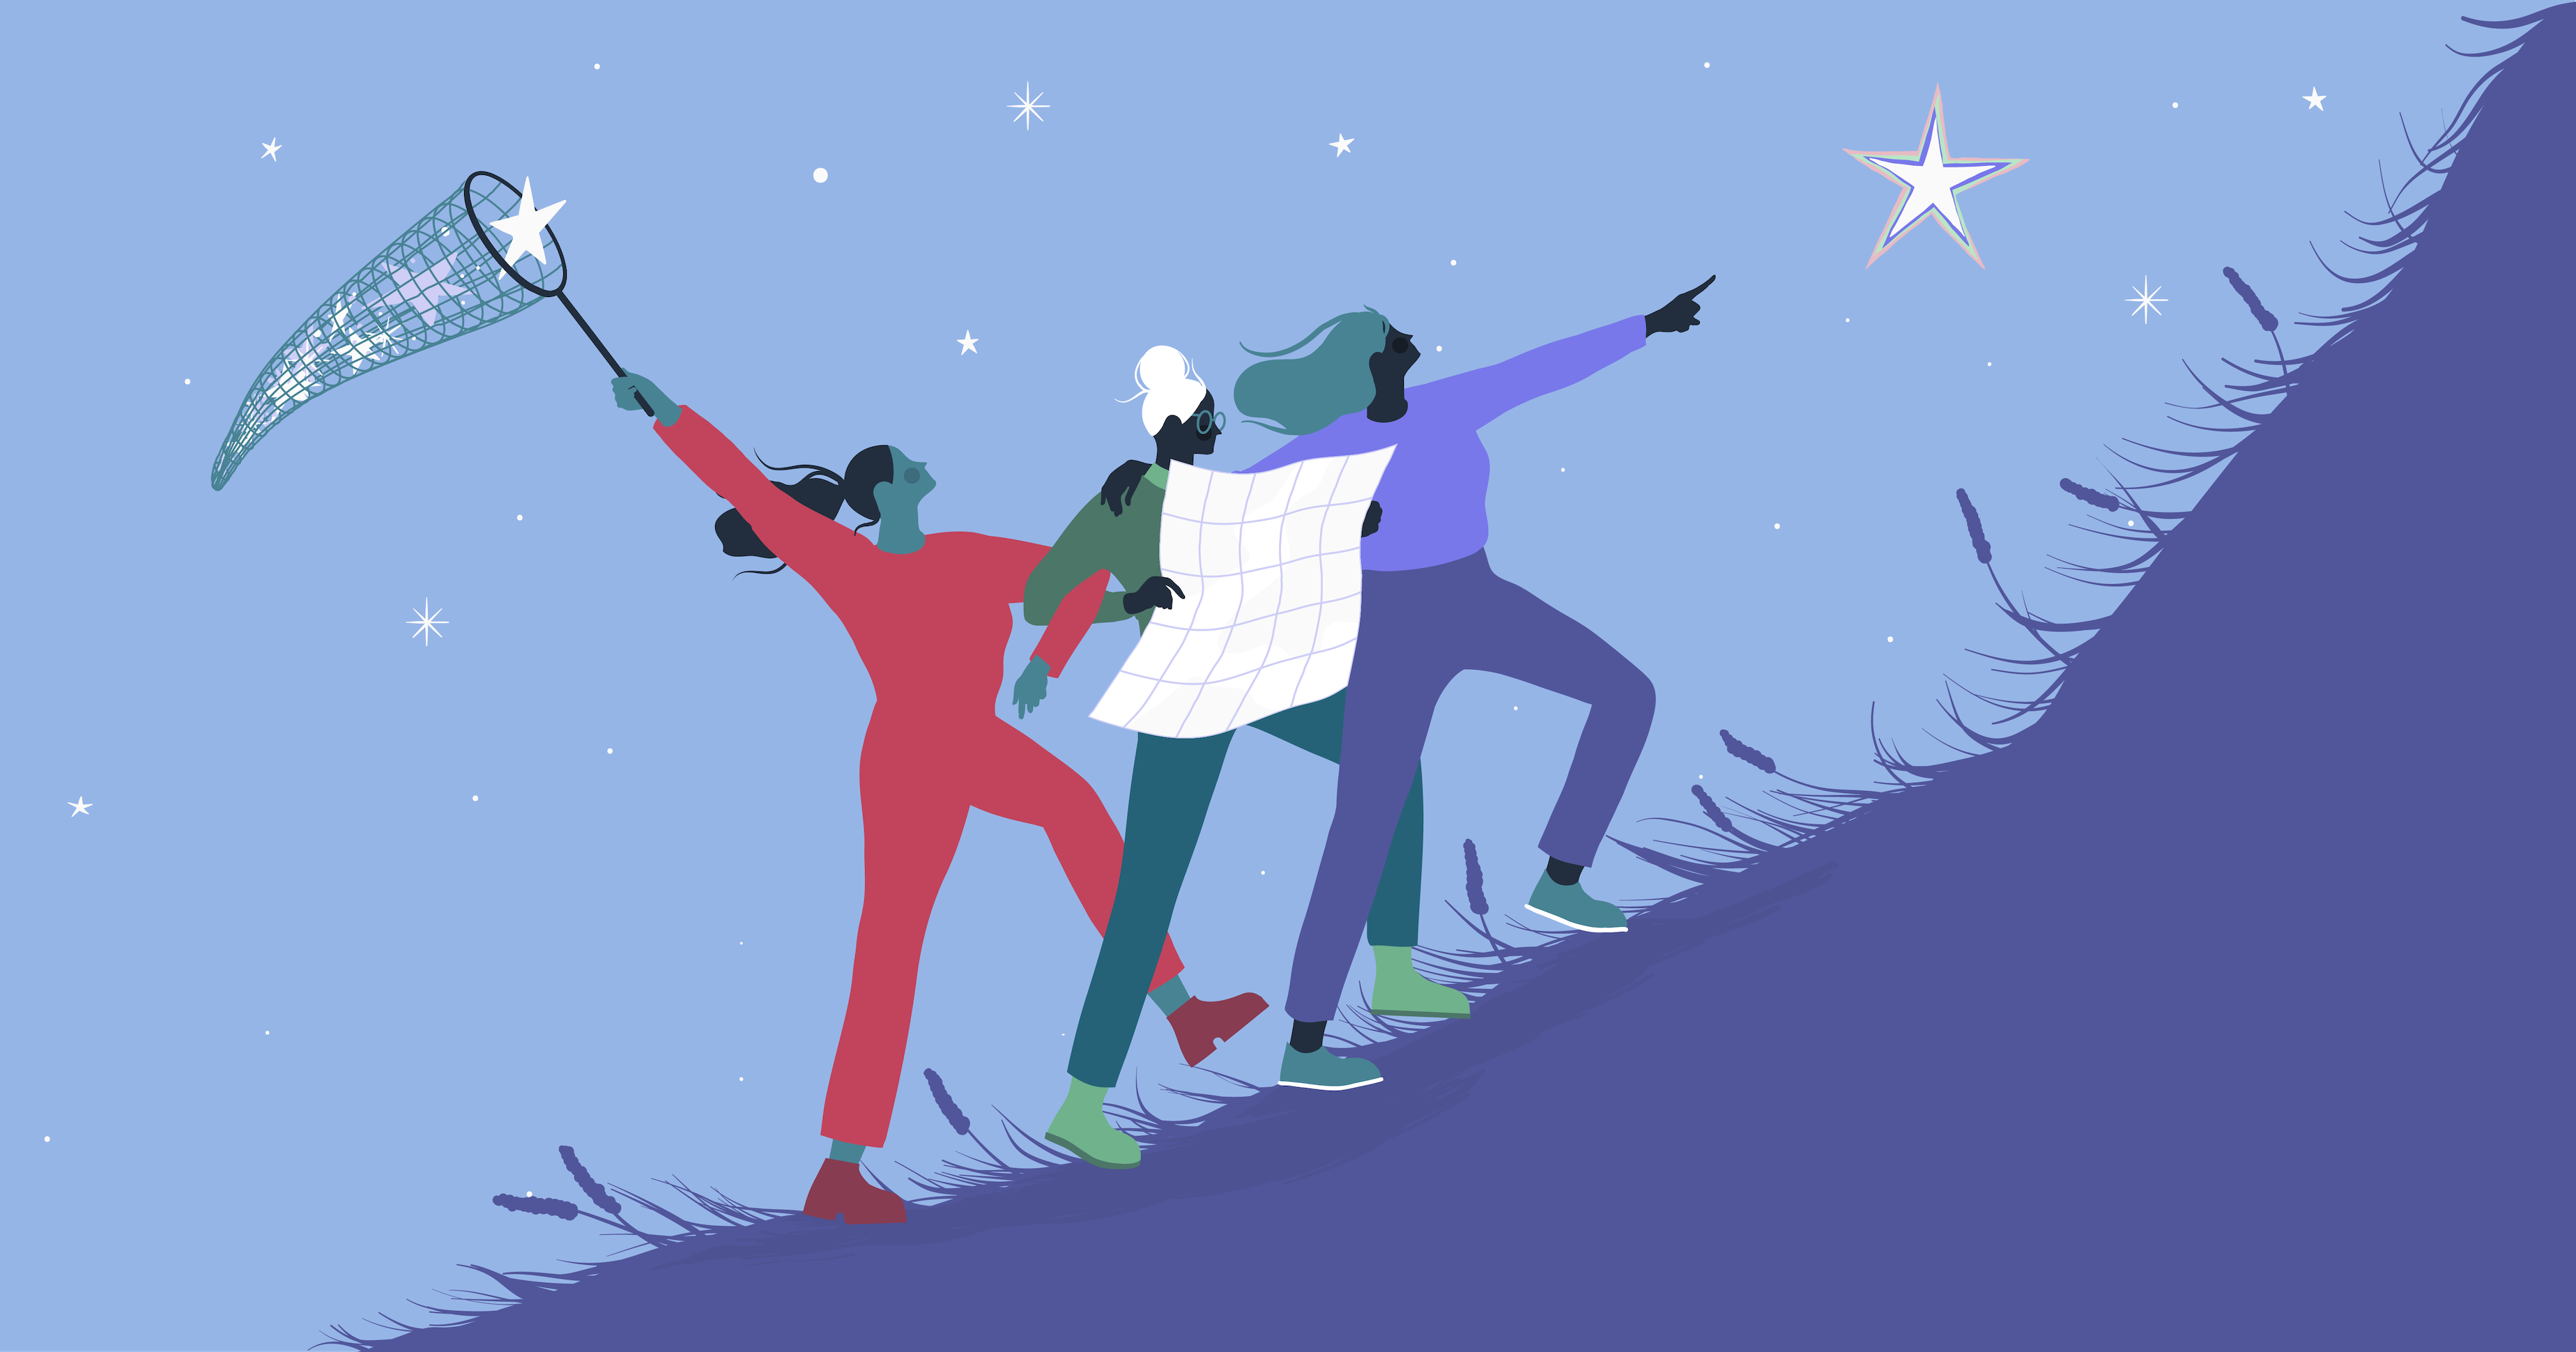 Illustration of three people climbing a hill together signifying the act of building community